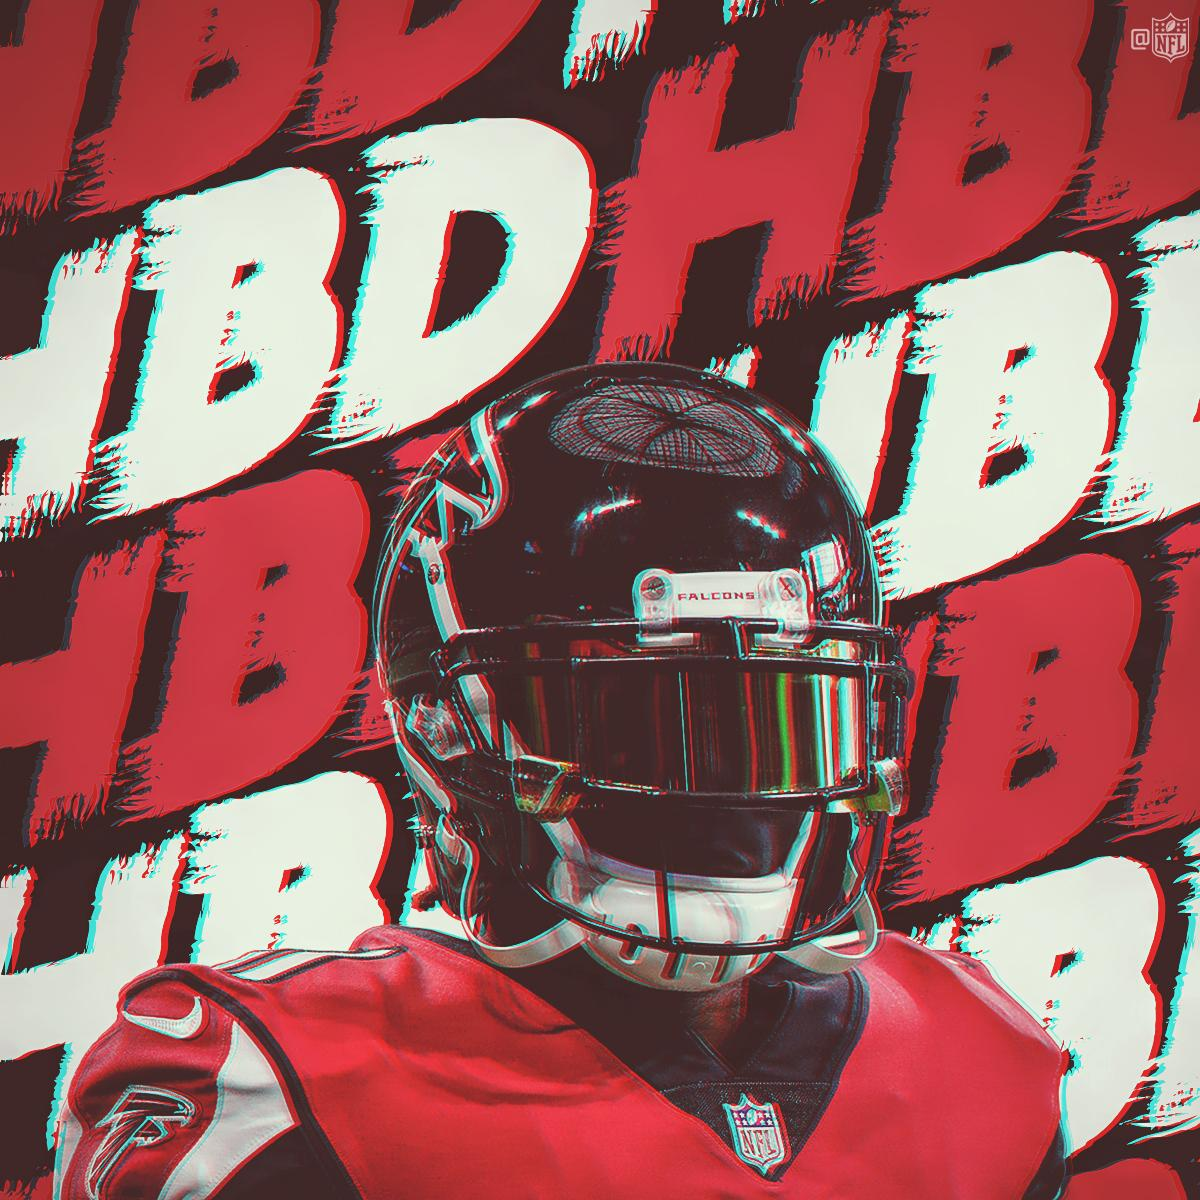 HAPPY BIRTHDAY to @AtlantaFalcons star wideout @juliojones_11! ���� https://t.co/hgNxIgo4zR